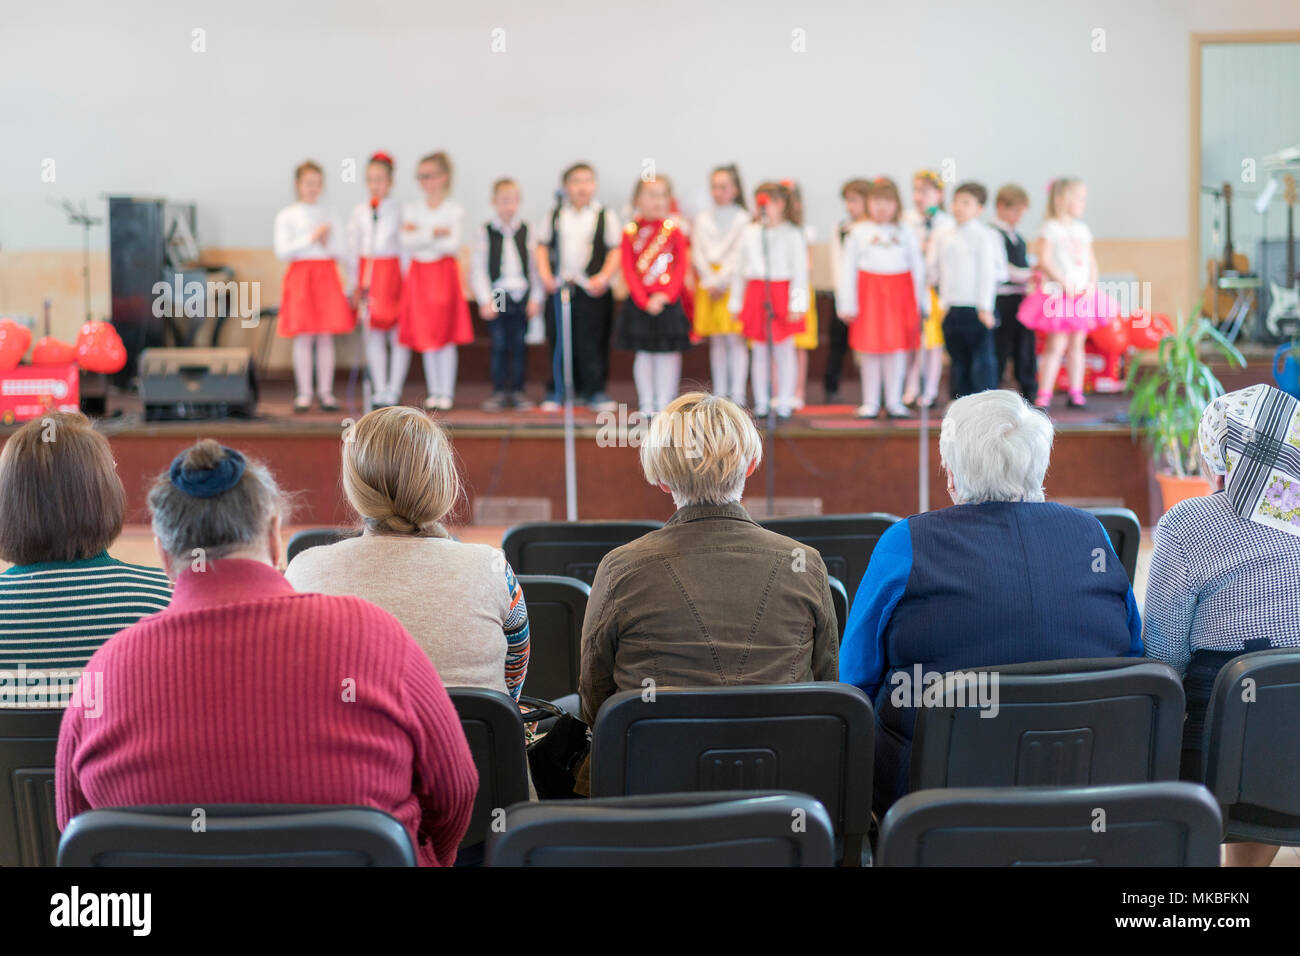 image of blur kid 's show on stage at school , for background usage - Stock Image